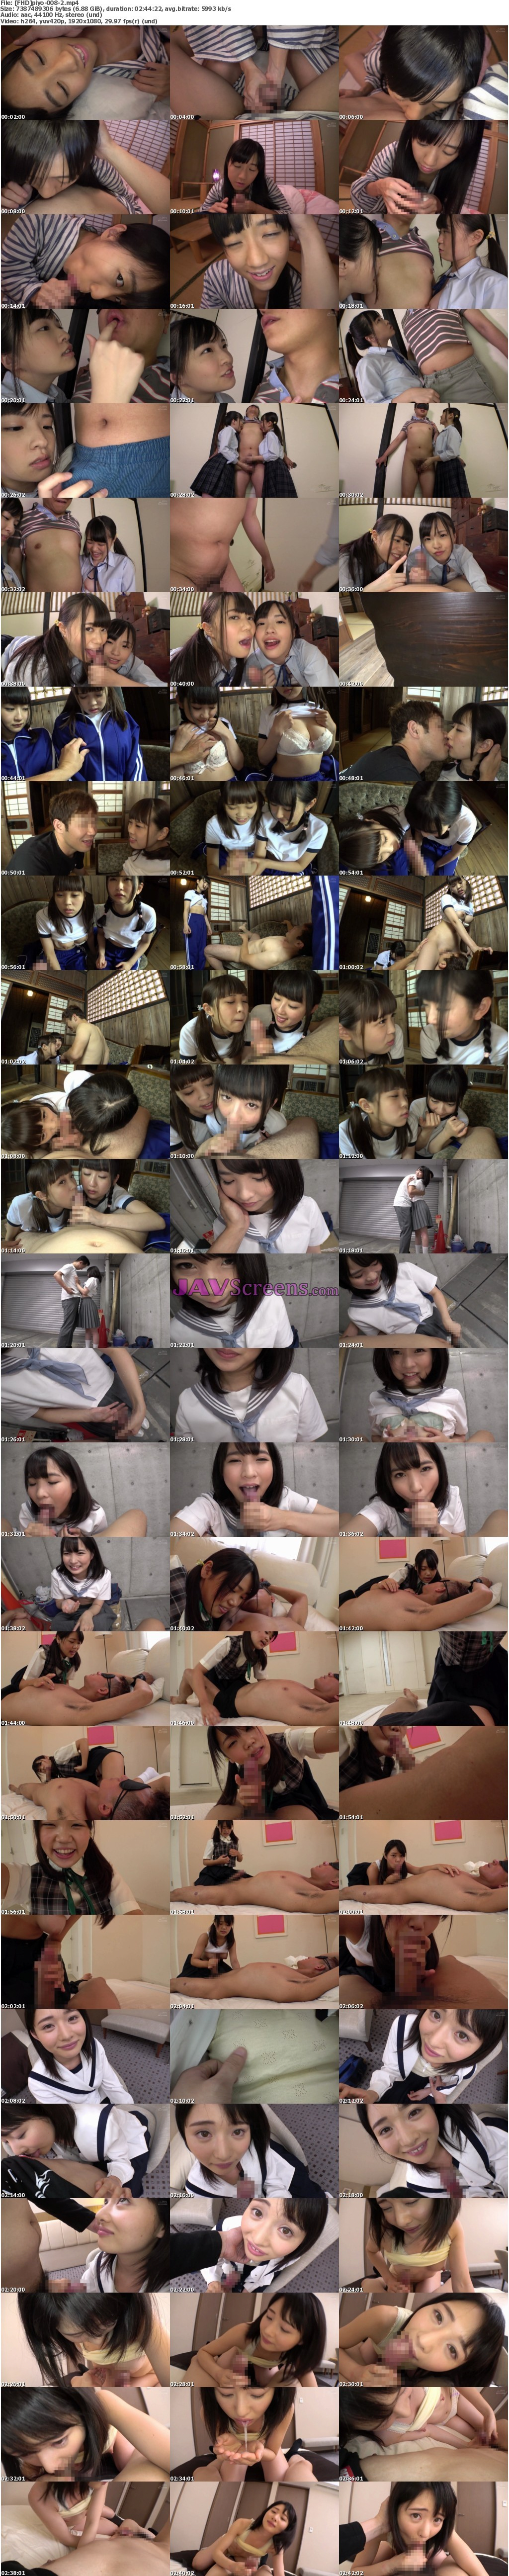 PIYO-008B.jpg - JAV Screenshot